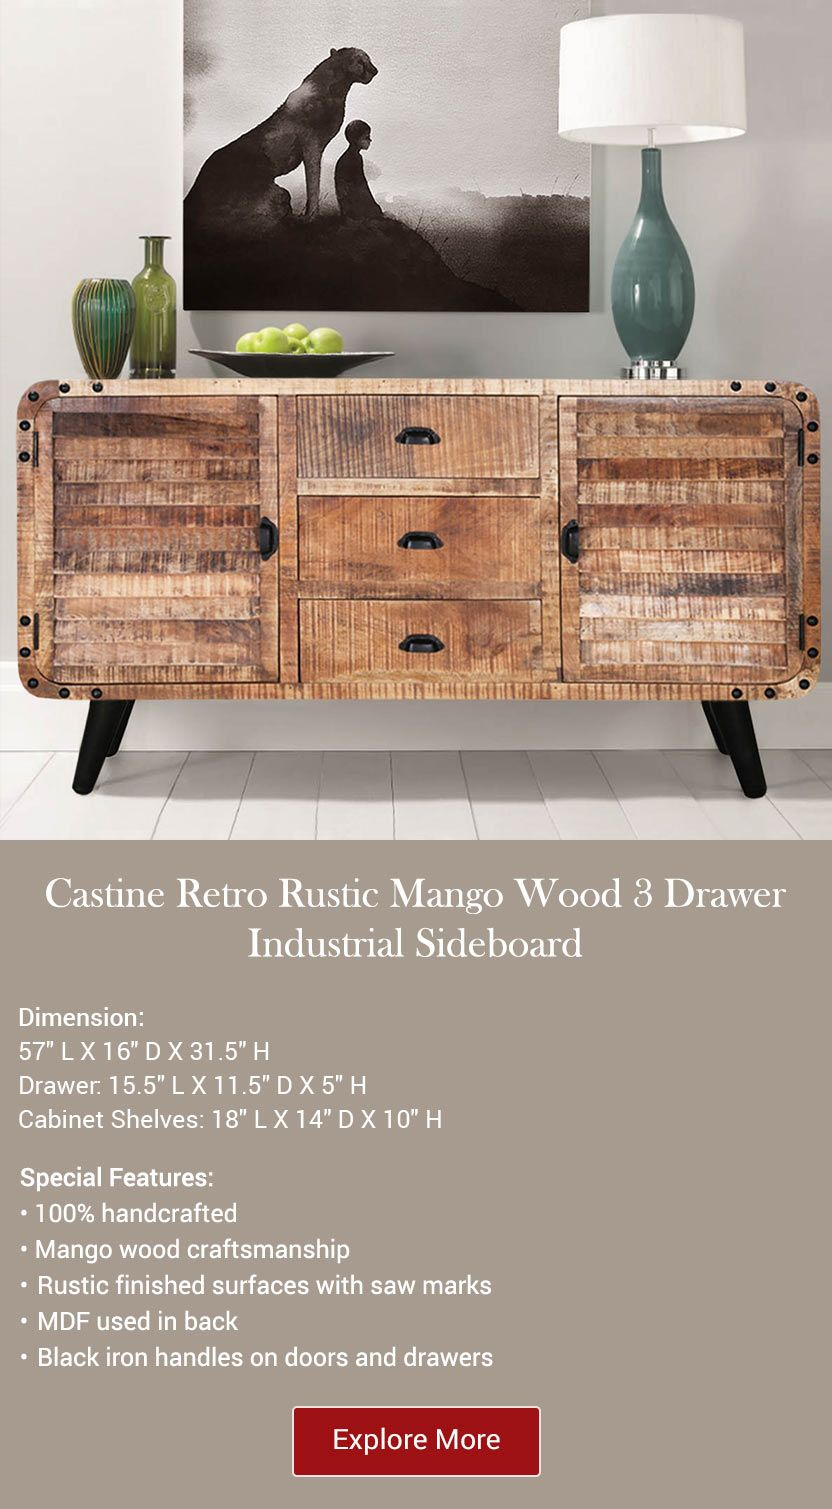 Castine Retro Rustic Mango Wood 3 Drawer Industrial Intended For Industrial Style 3 Drawer Buffets (View 10 of 30)